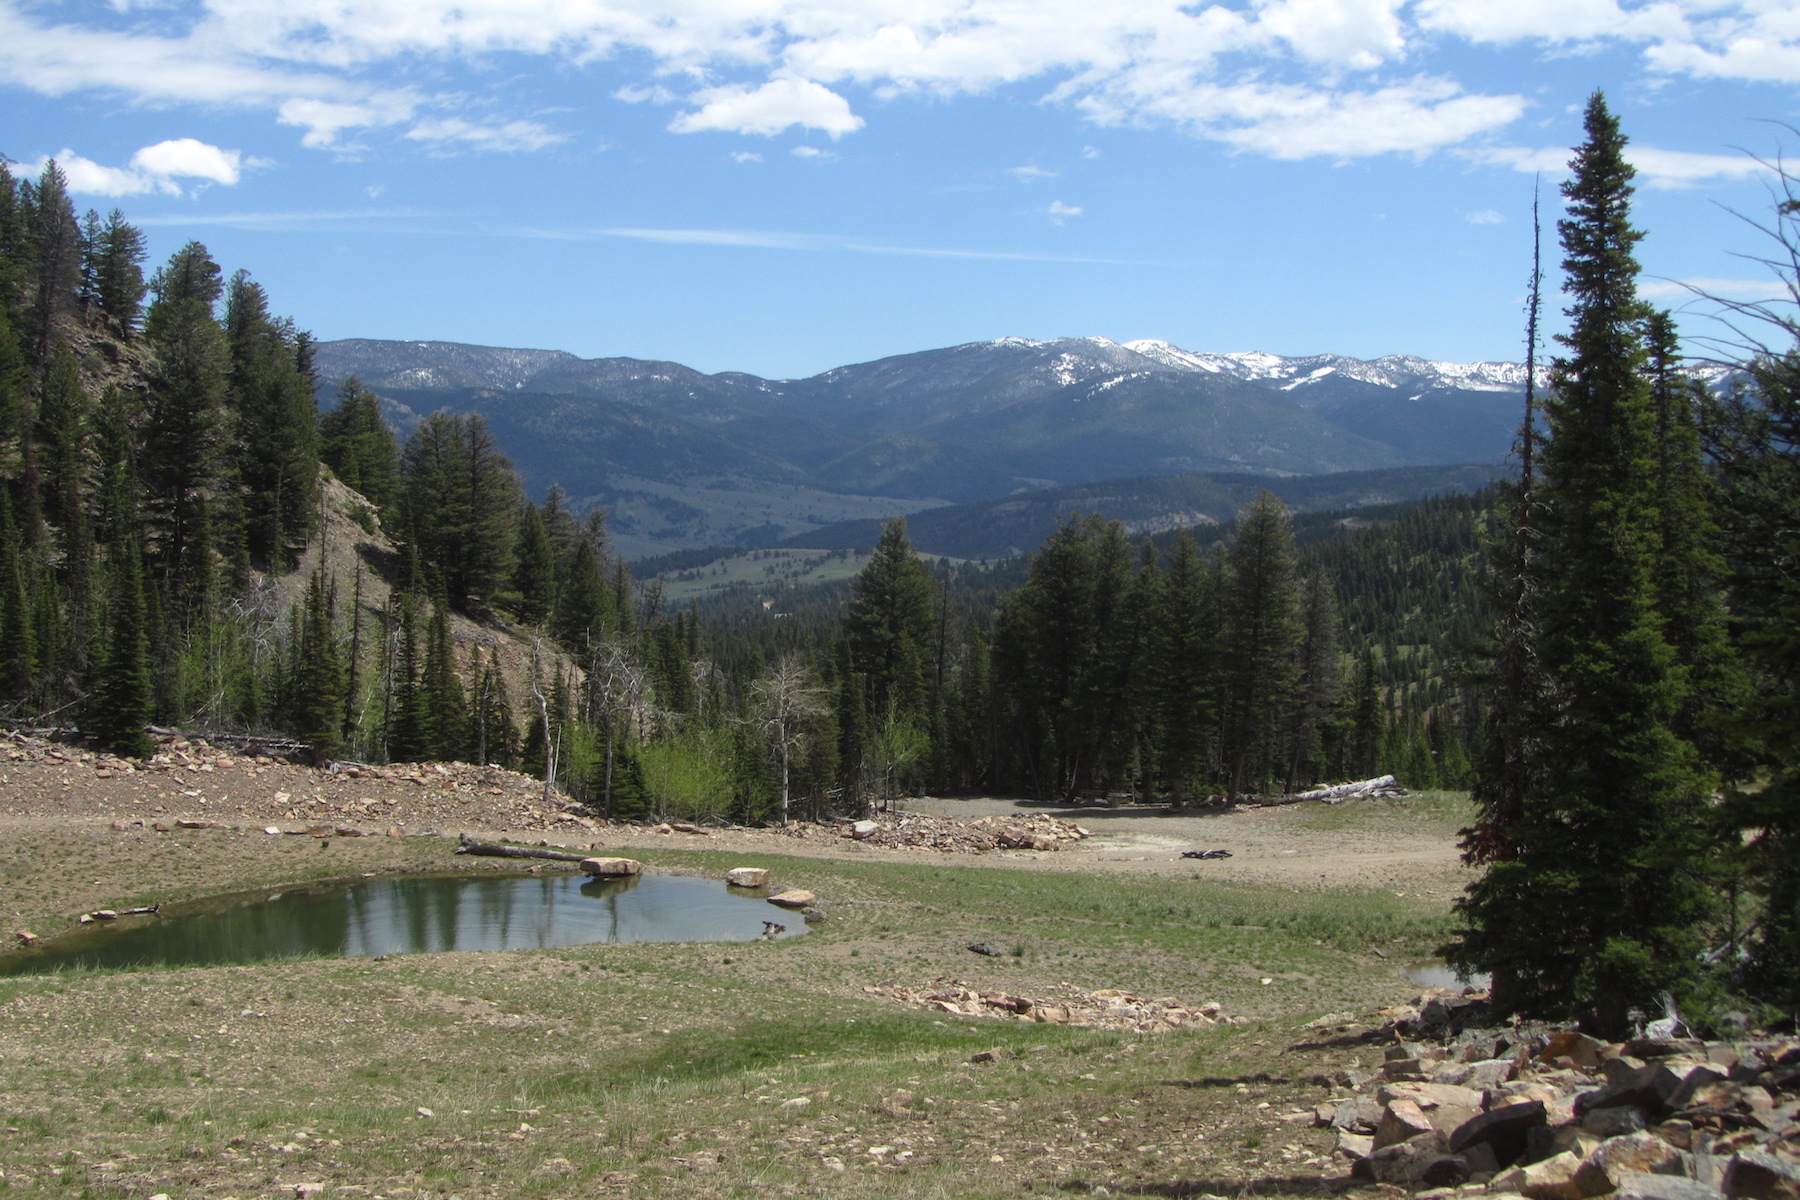 Land for Sale at Large 40 Acre Big EZ Estates Parcels Beaver Creek Road, Lots 42 & 43 Big Sky, Montana 59716 United States